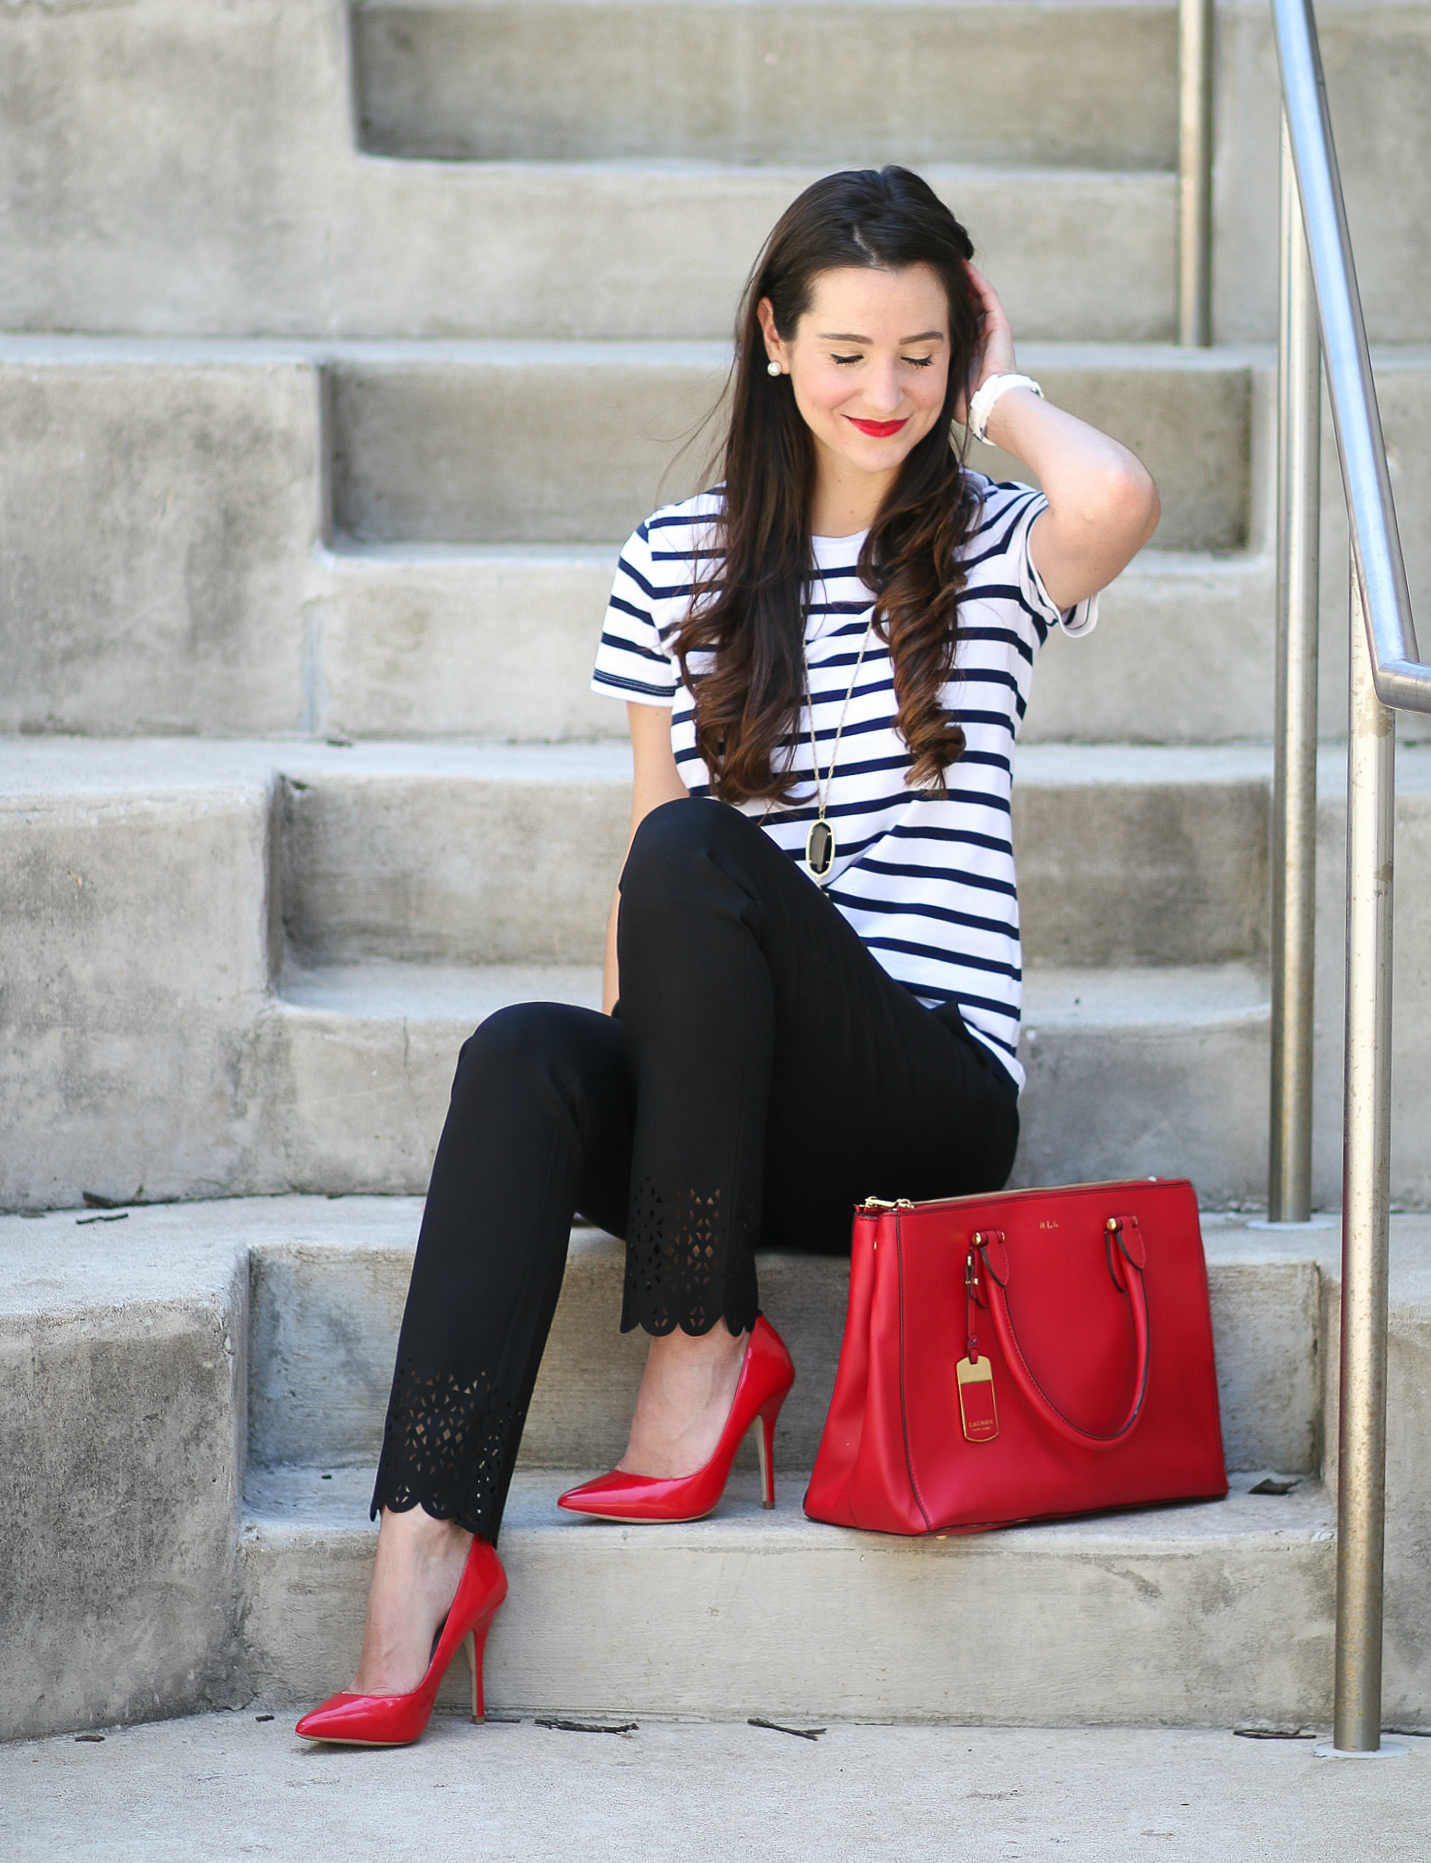 Stylish Business Casual Outfit Ideas from Banana Republic